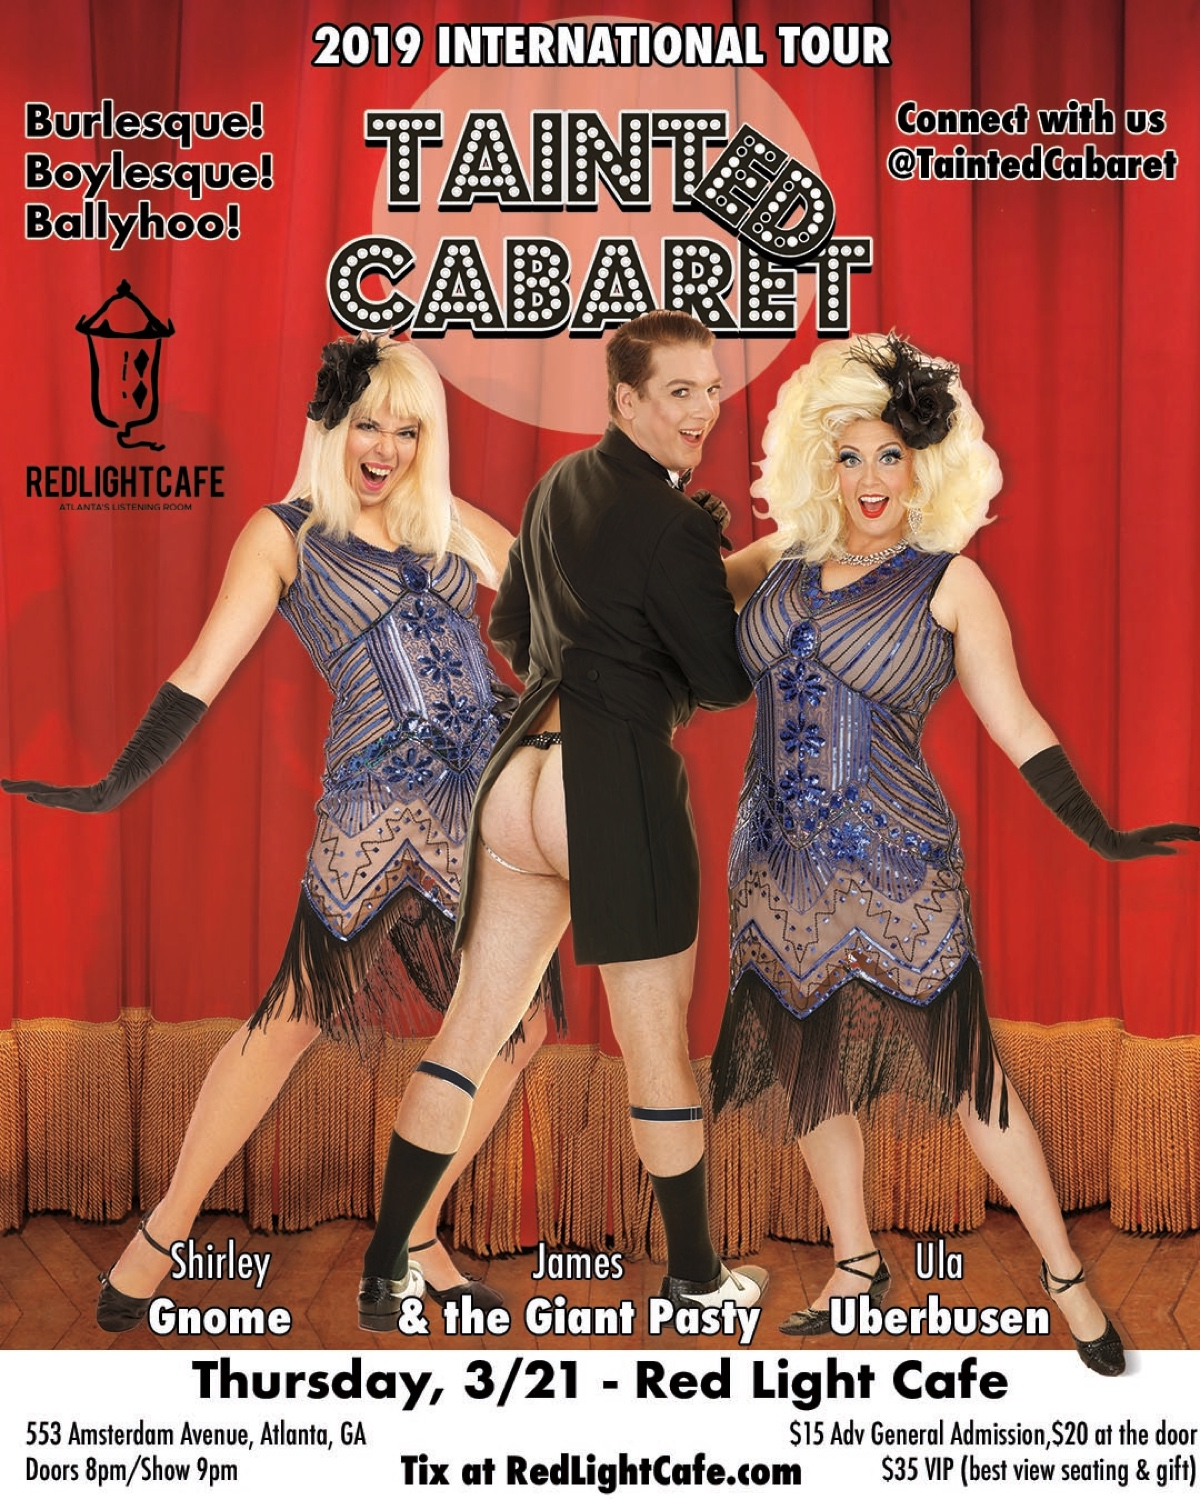 Tainted Cabaret in Atlanta! — March 21, 2019 — Red Light Café, Atlanta, GA